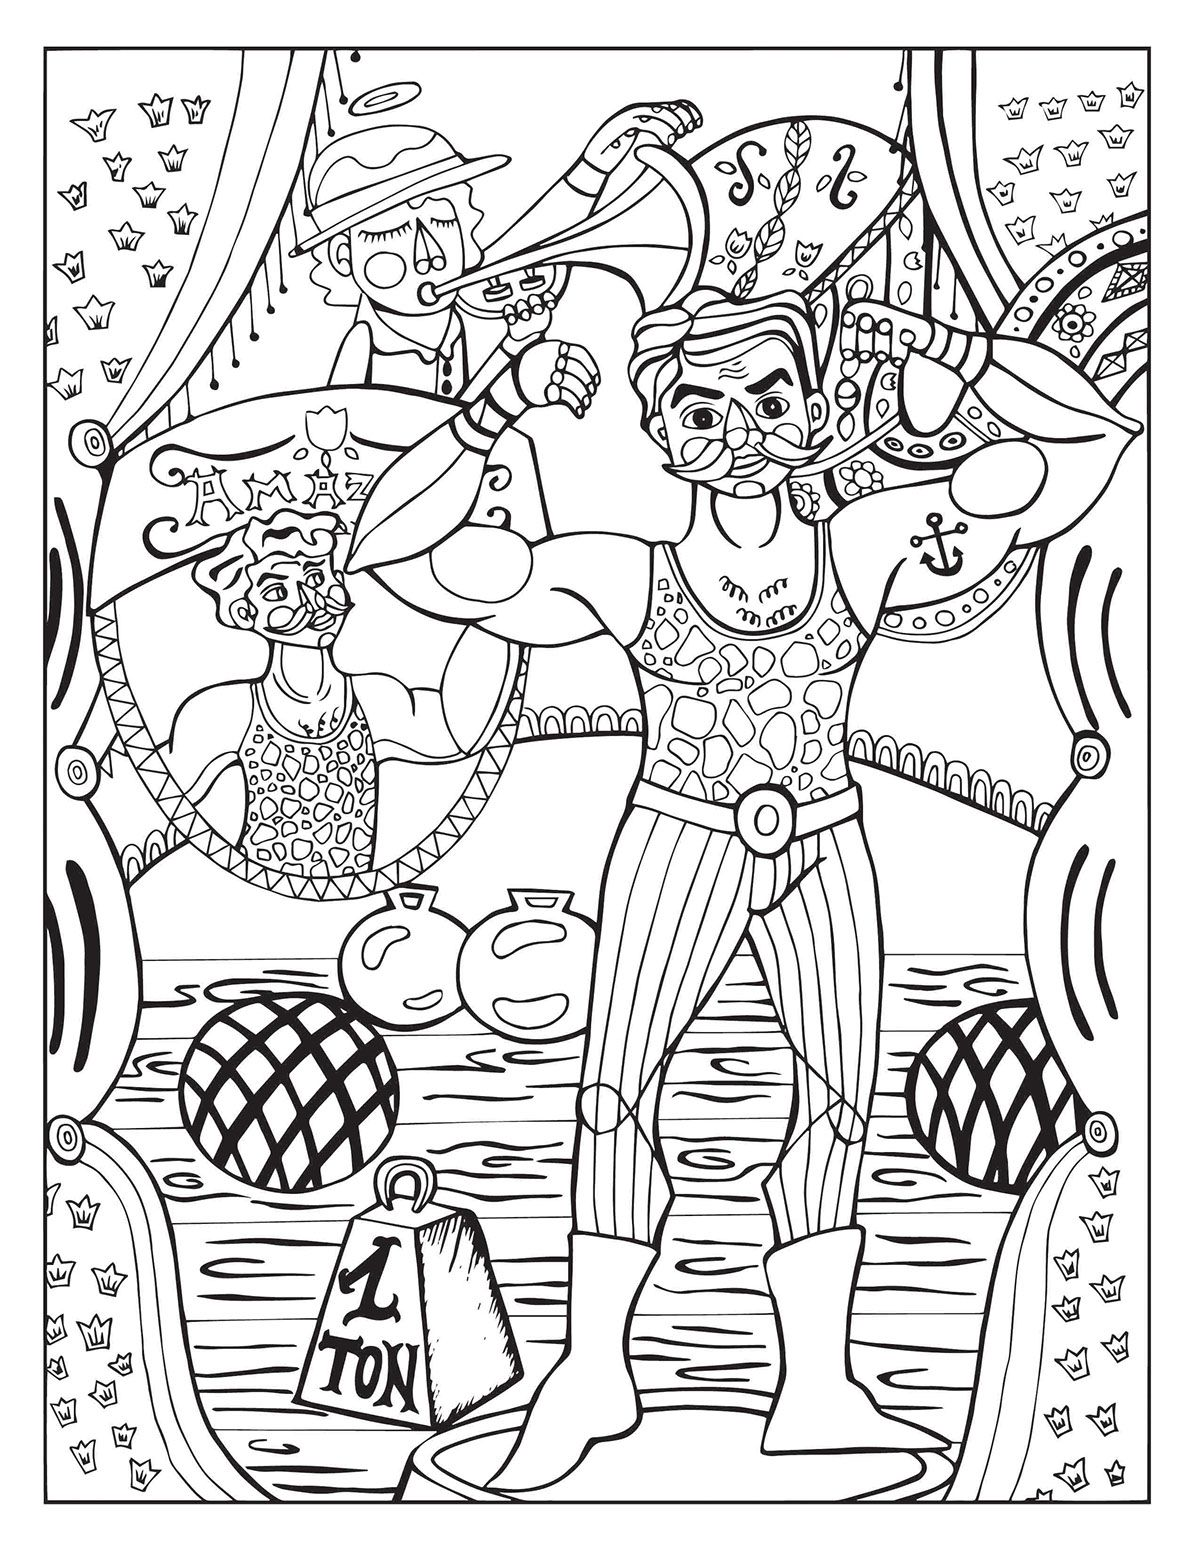 Coloriage Cirque Cp.Coloriage Coloriage Cirque Coloring Pages Coloring Book